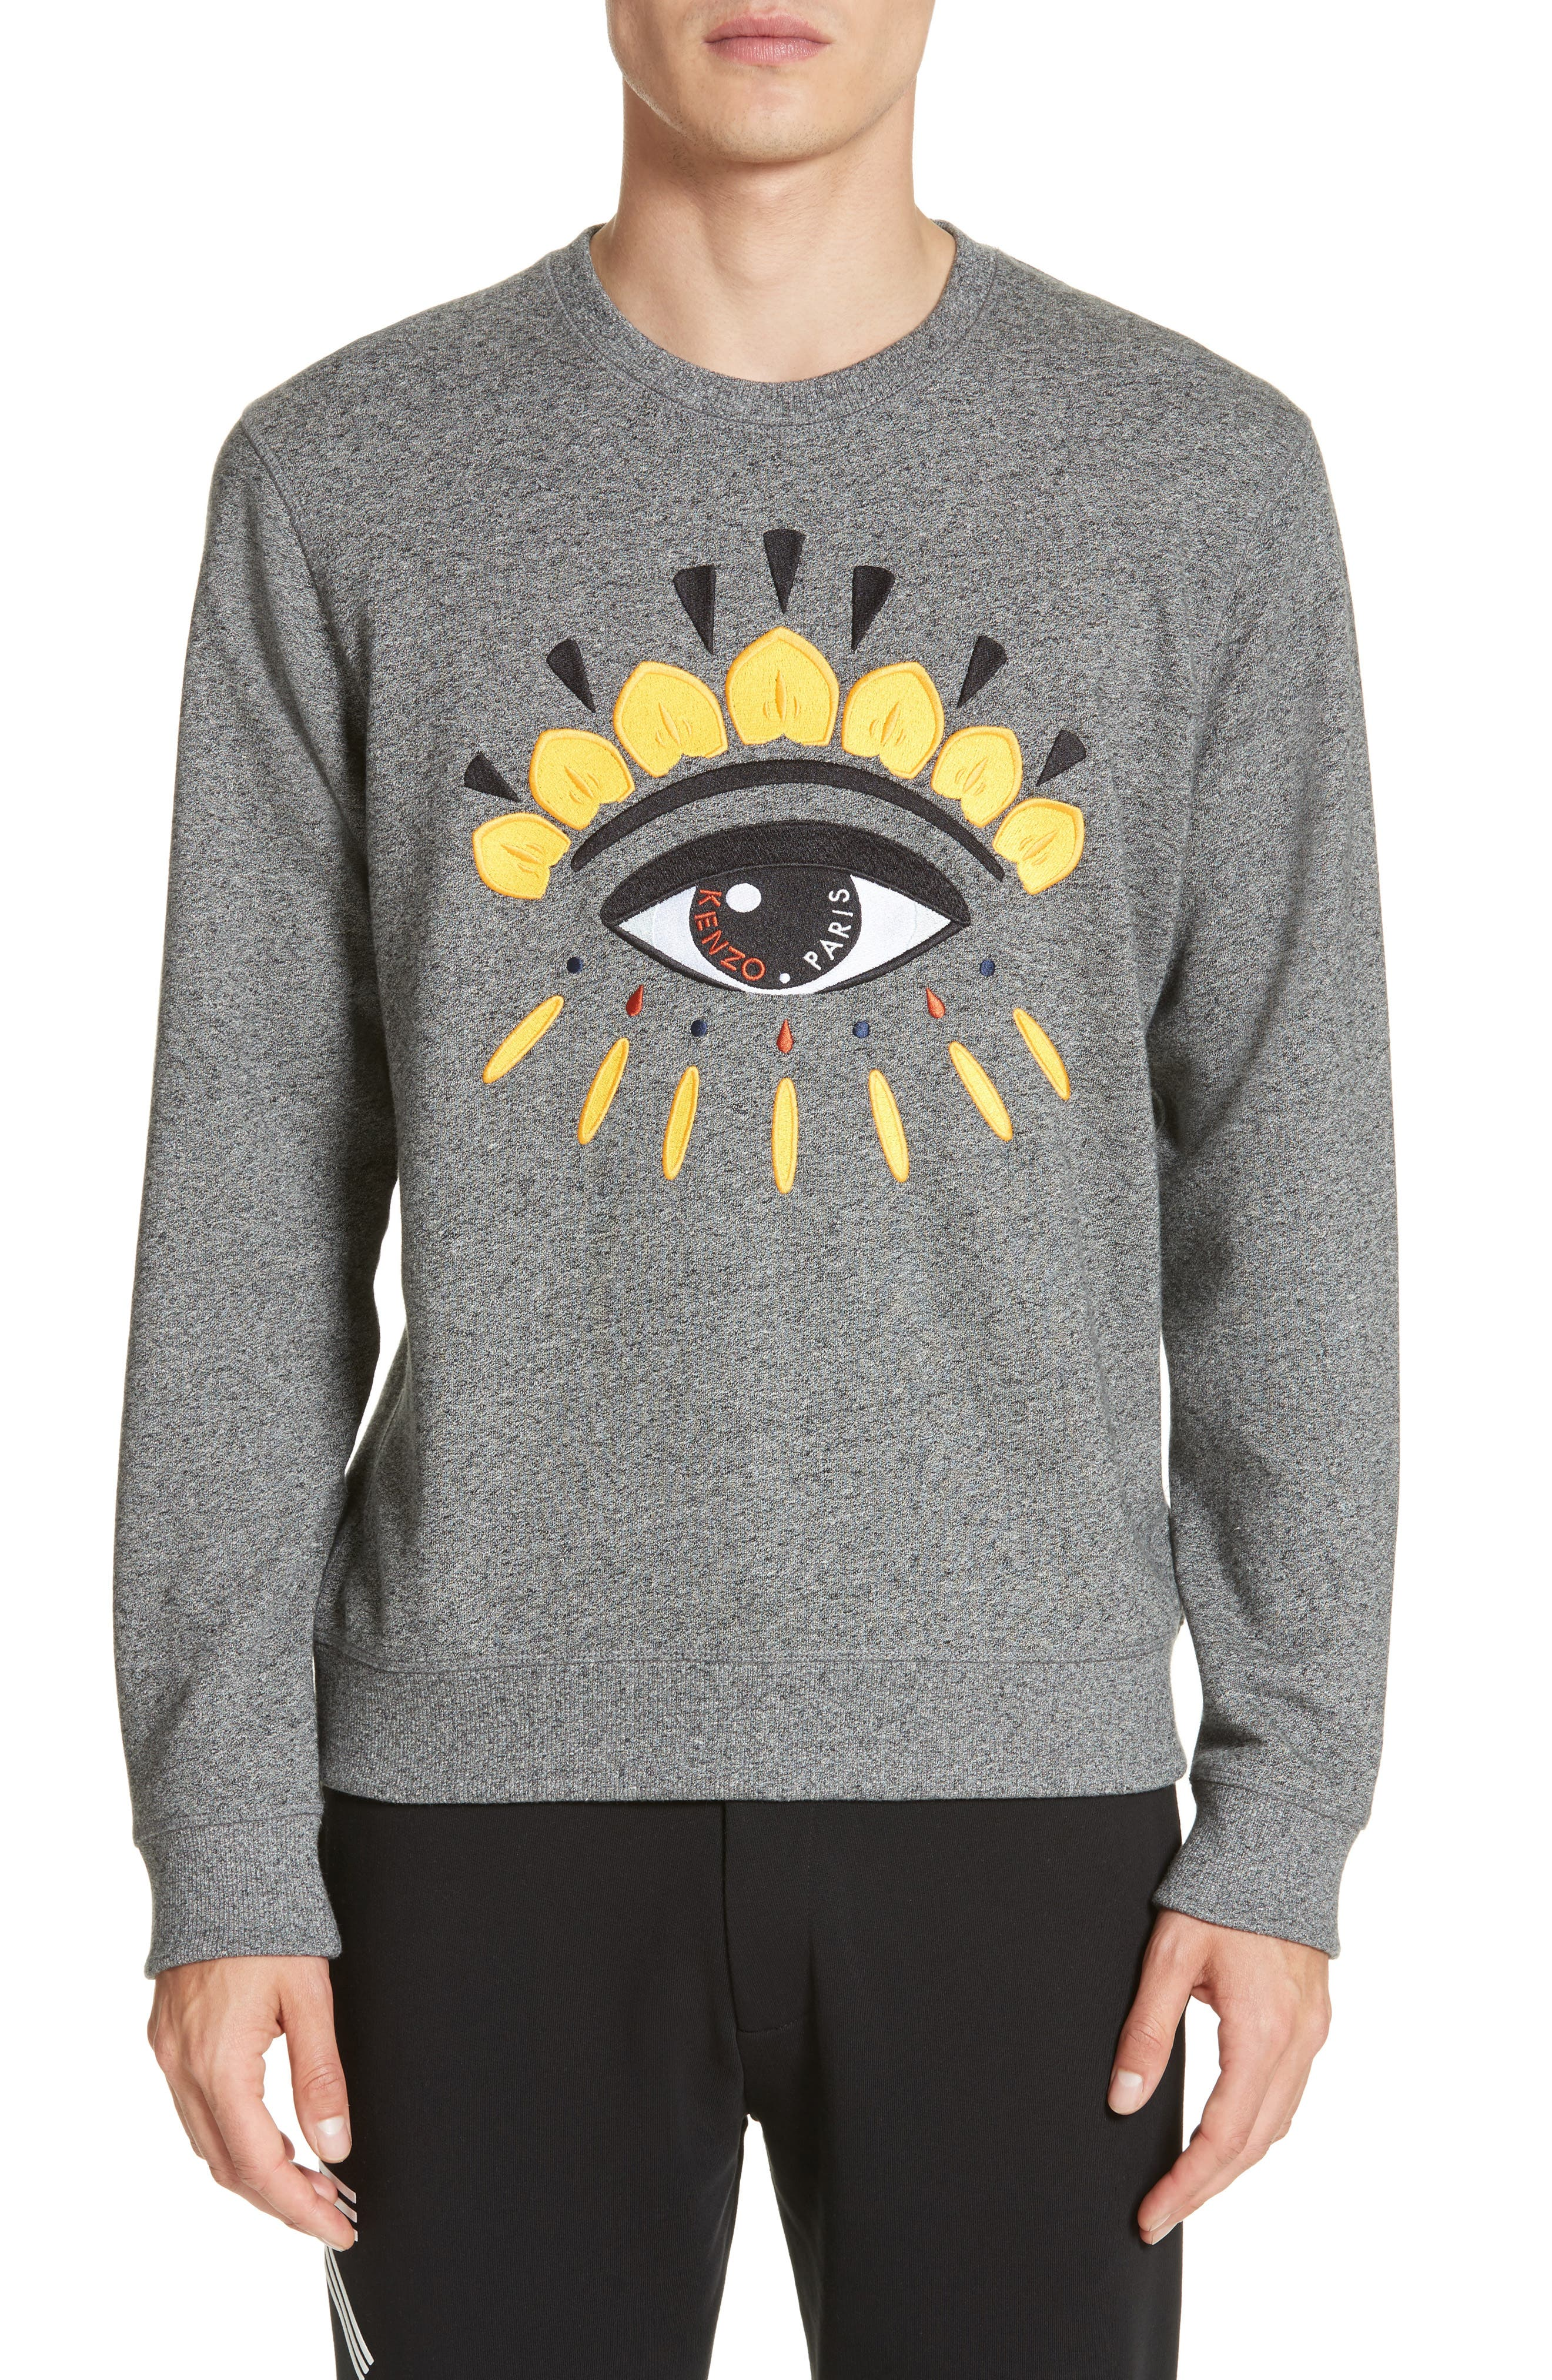 Kenzo t-shirts and sweatshirts As soon as you touch a Kenzo t-shirt or sweatshirt you will immediately feel that it is high-quality children's clothing.